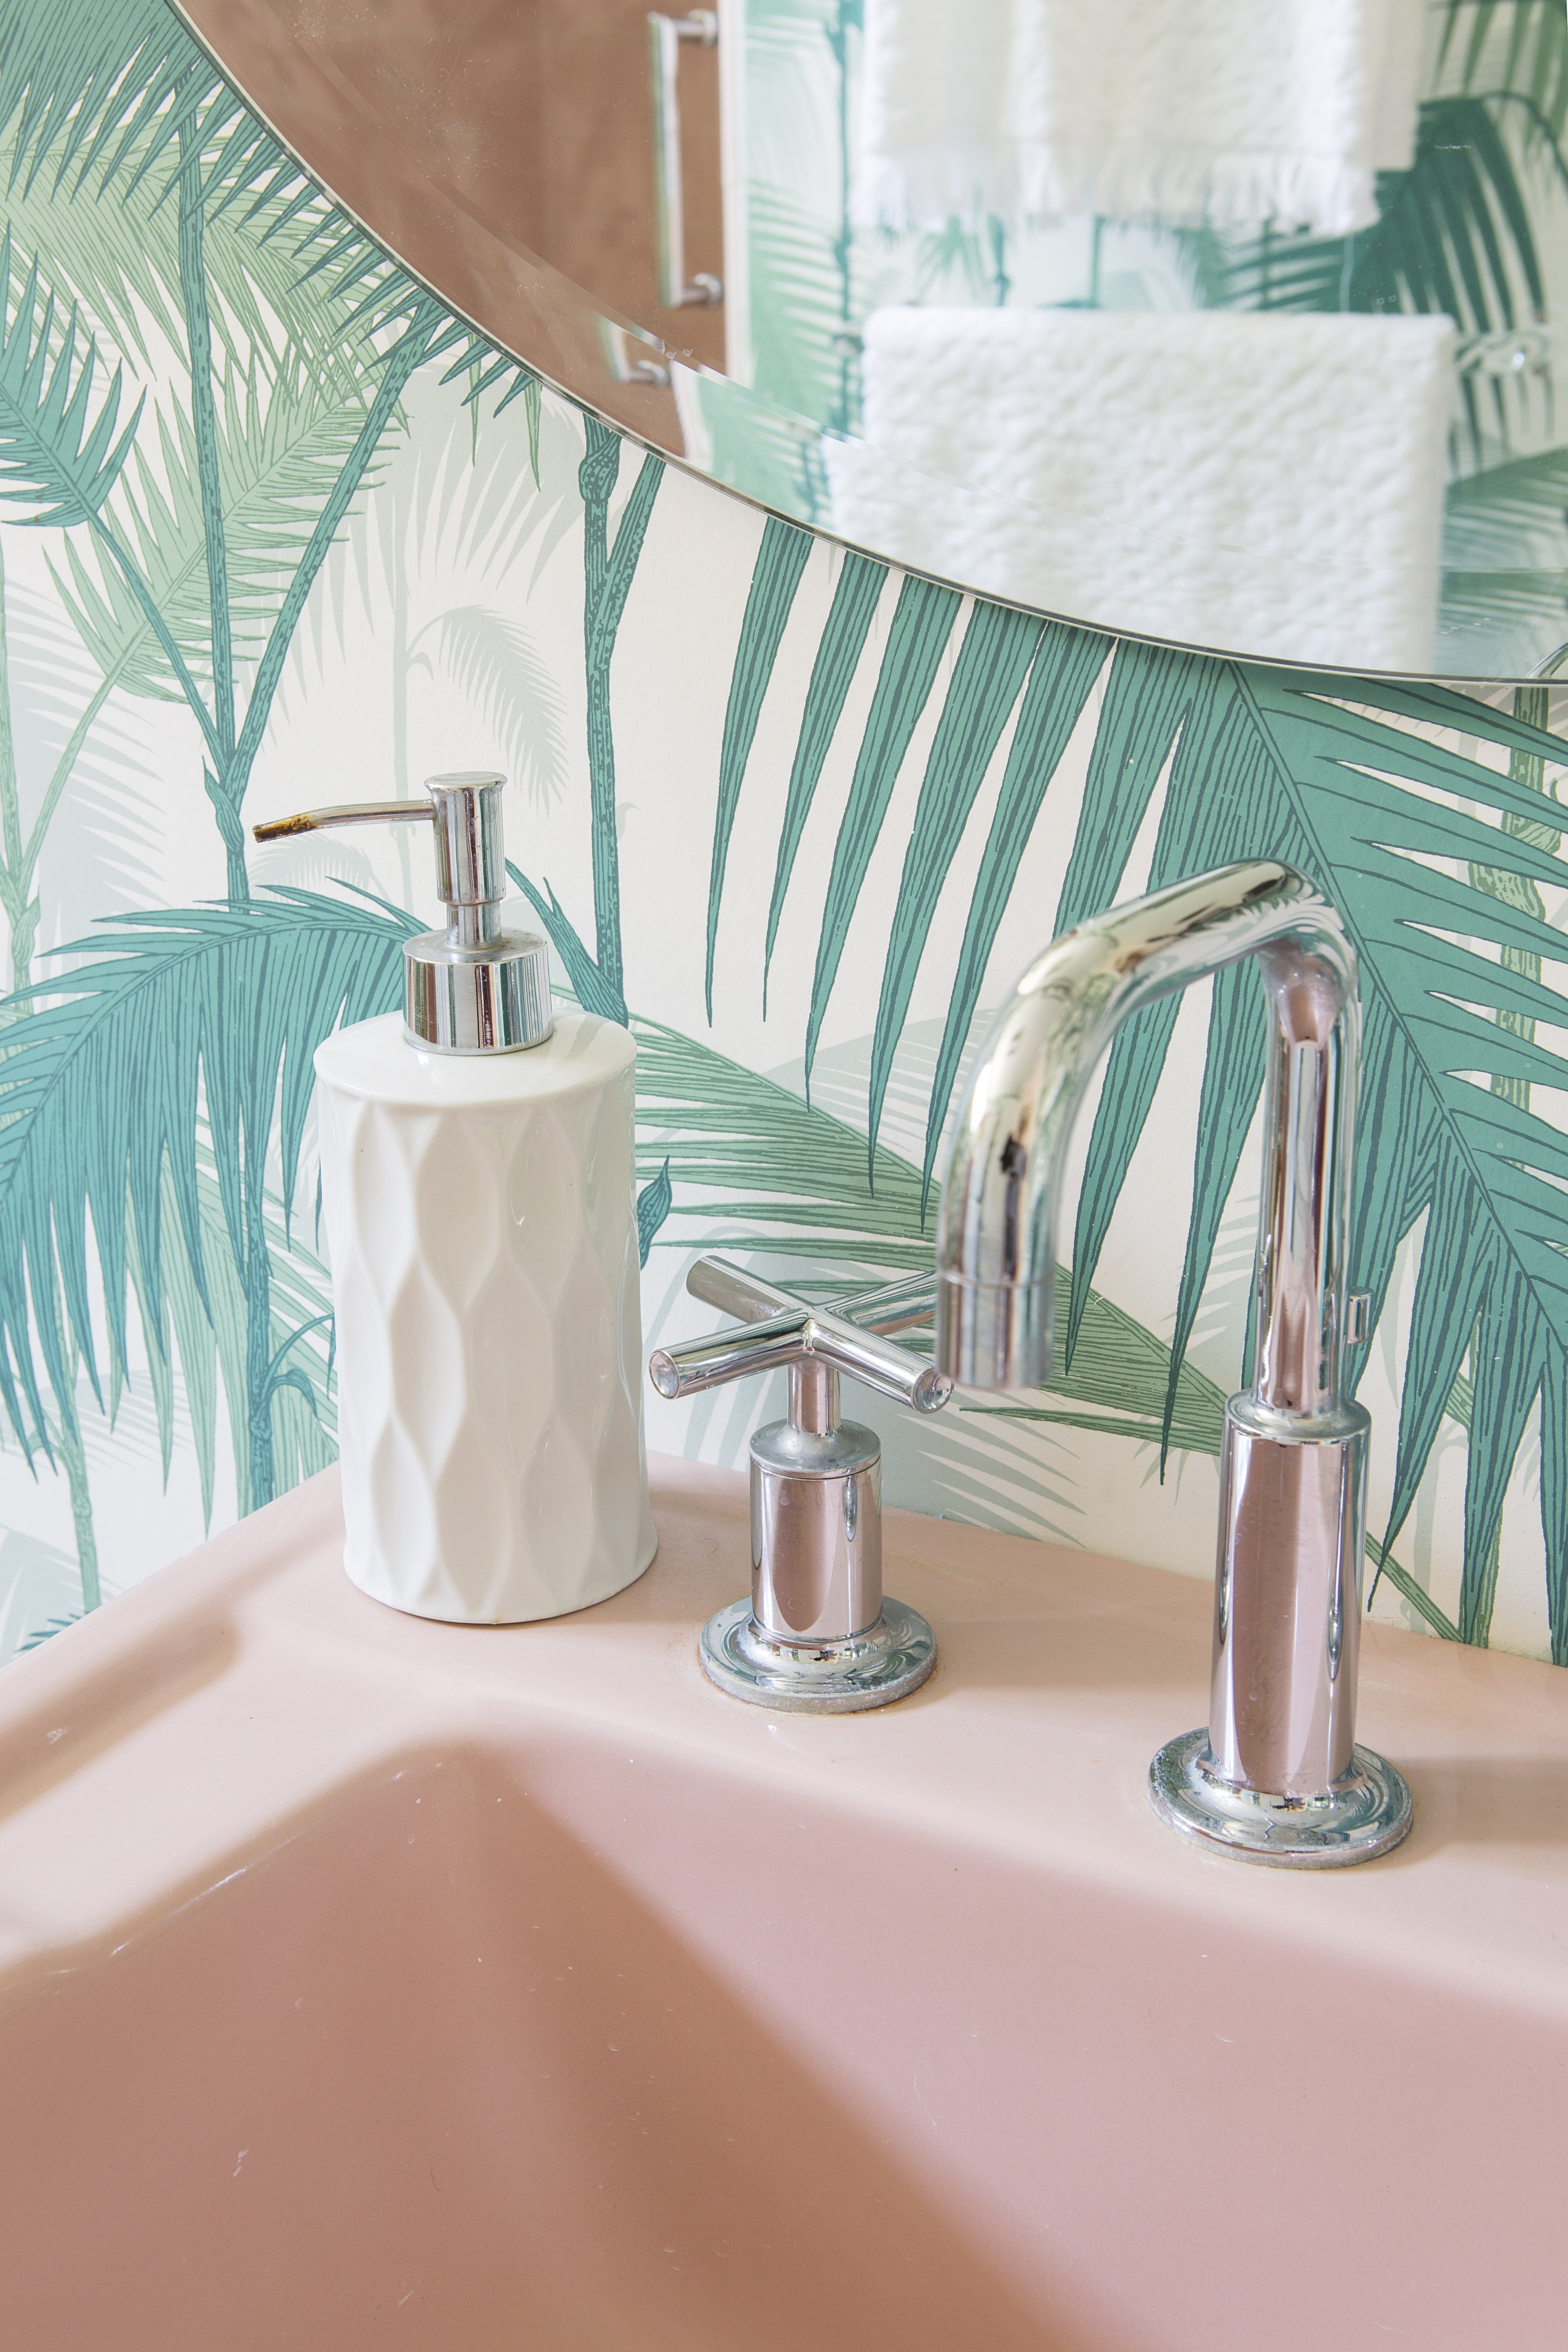 Pink Bathroom Revival How To Make Pink Chic Home